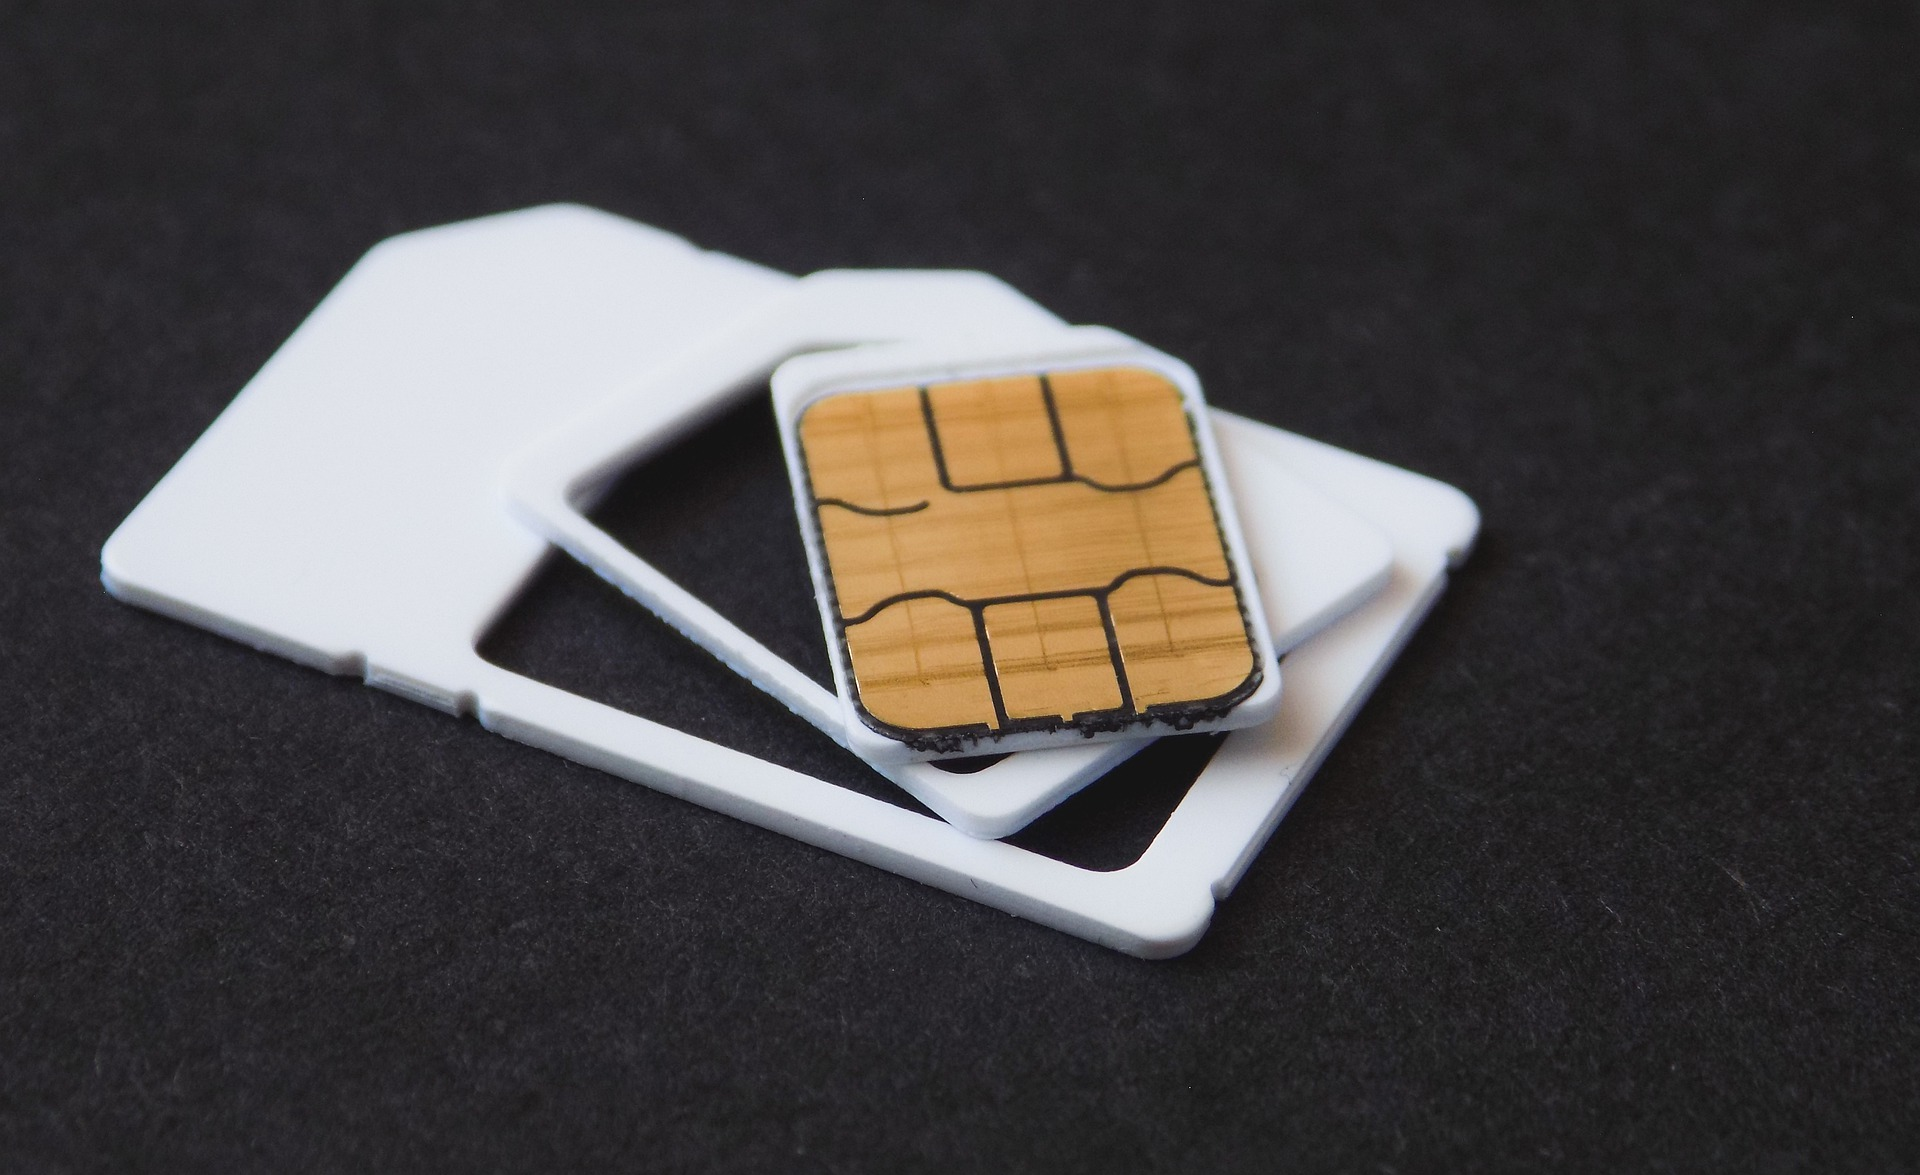 SIM Swap Scam - What it is and How it Works?